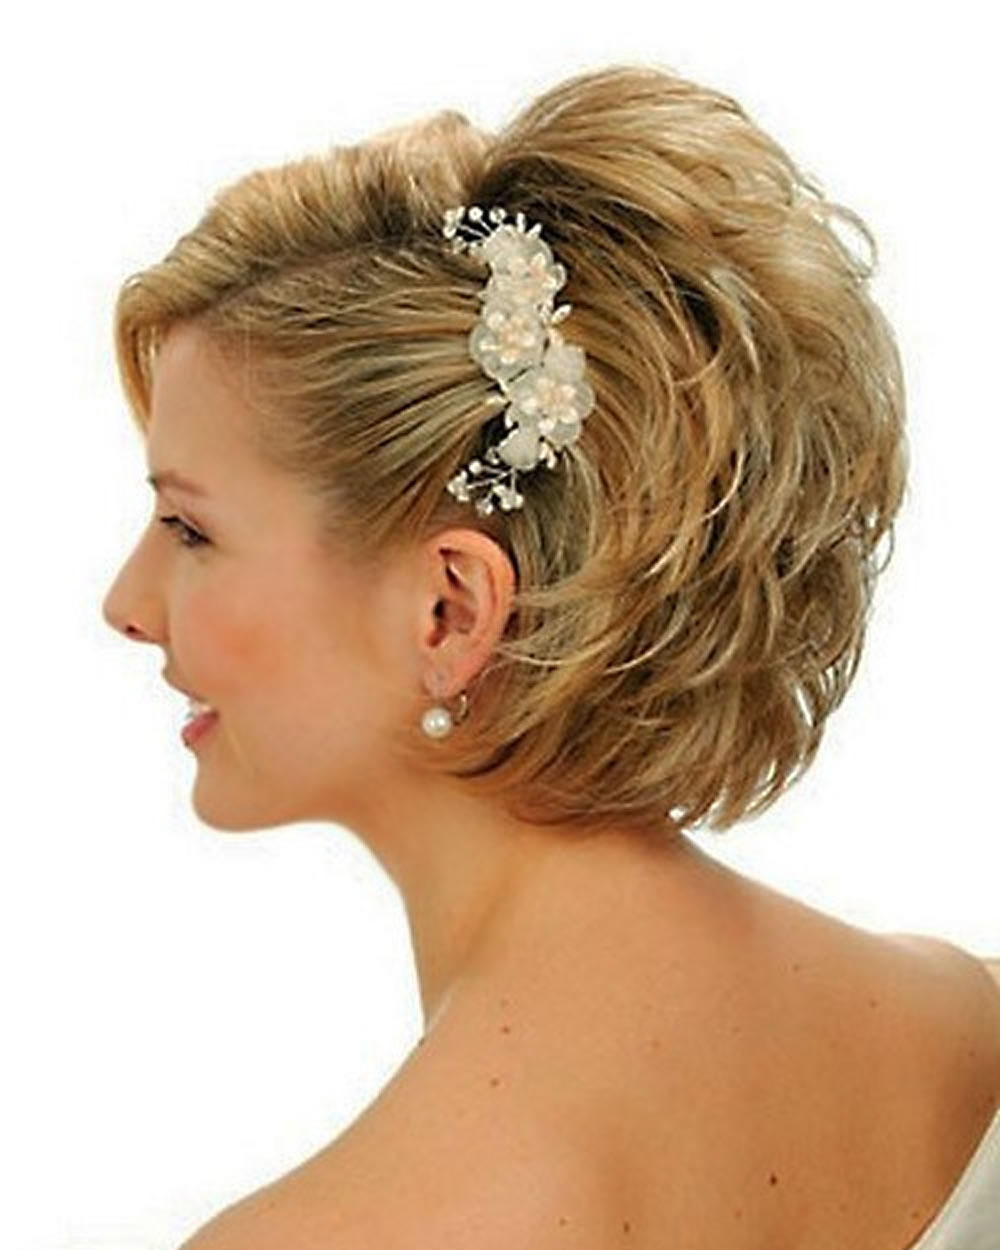 2018 Wedding Hairstyles And Make Up Guide For Short Hair – Hairstyles Regarding Hairstyles For Short Hair For Wedding (View 11 of 25)